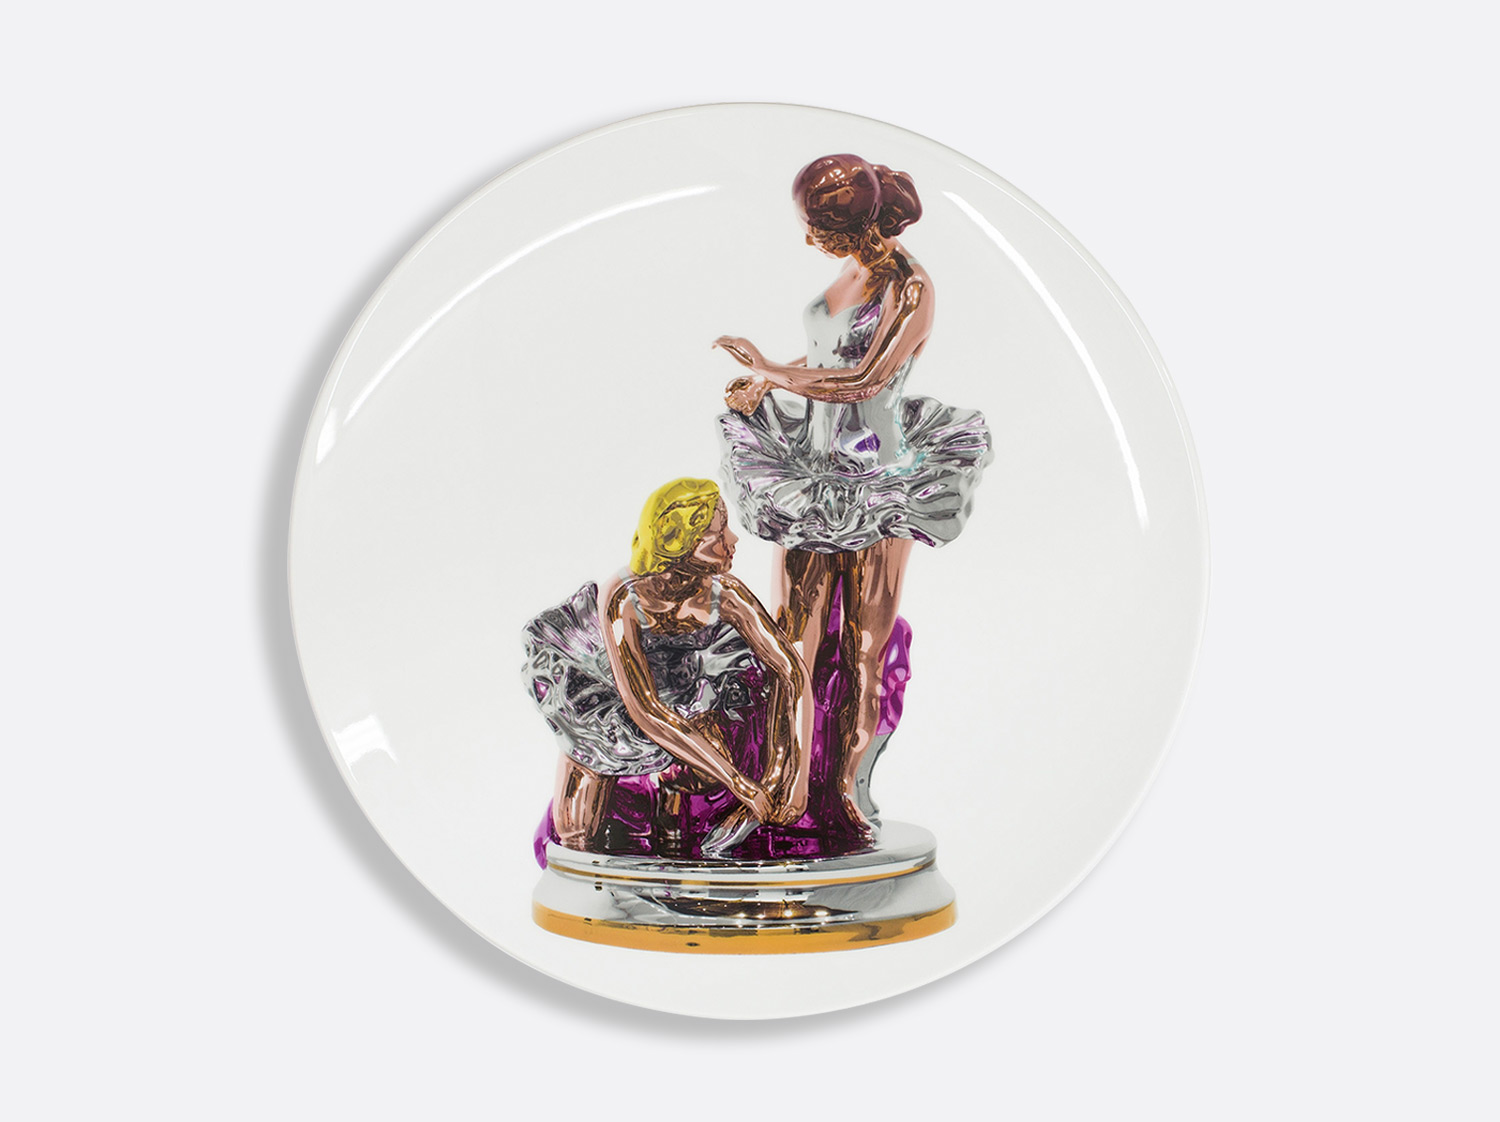 China Coupe service plate 31 cm of the collection BALLERINAS by Jeff Koons | Bernardaud